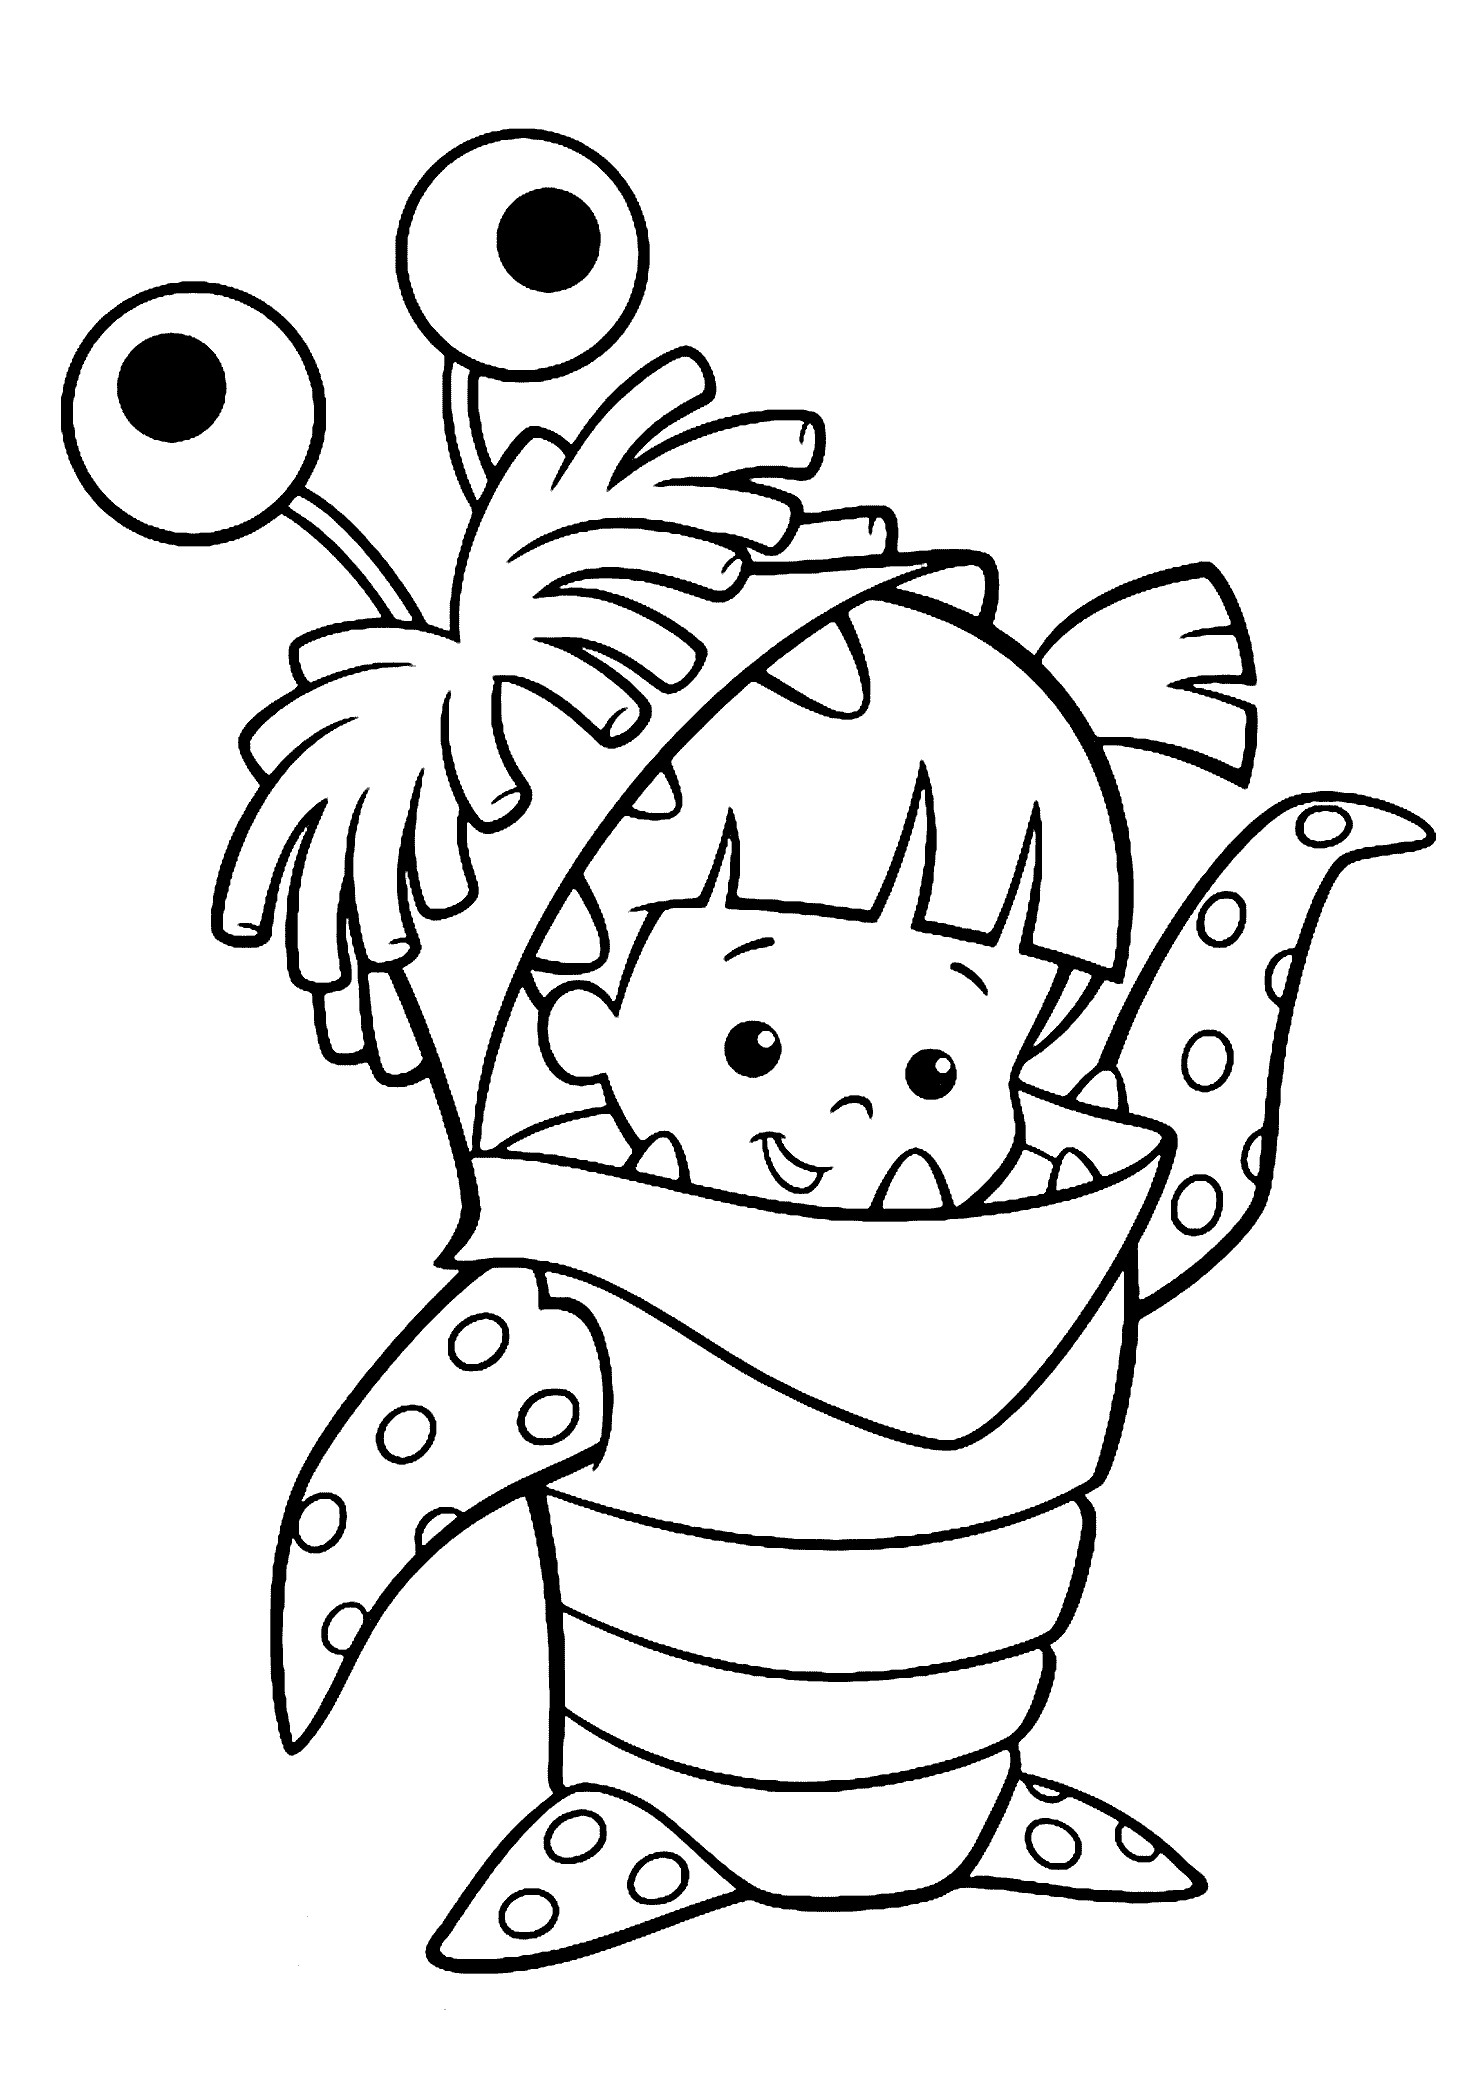 1483x2079 Mario Bros King Boo Coloring Page Cool Pages